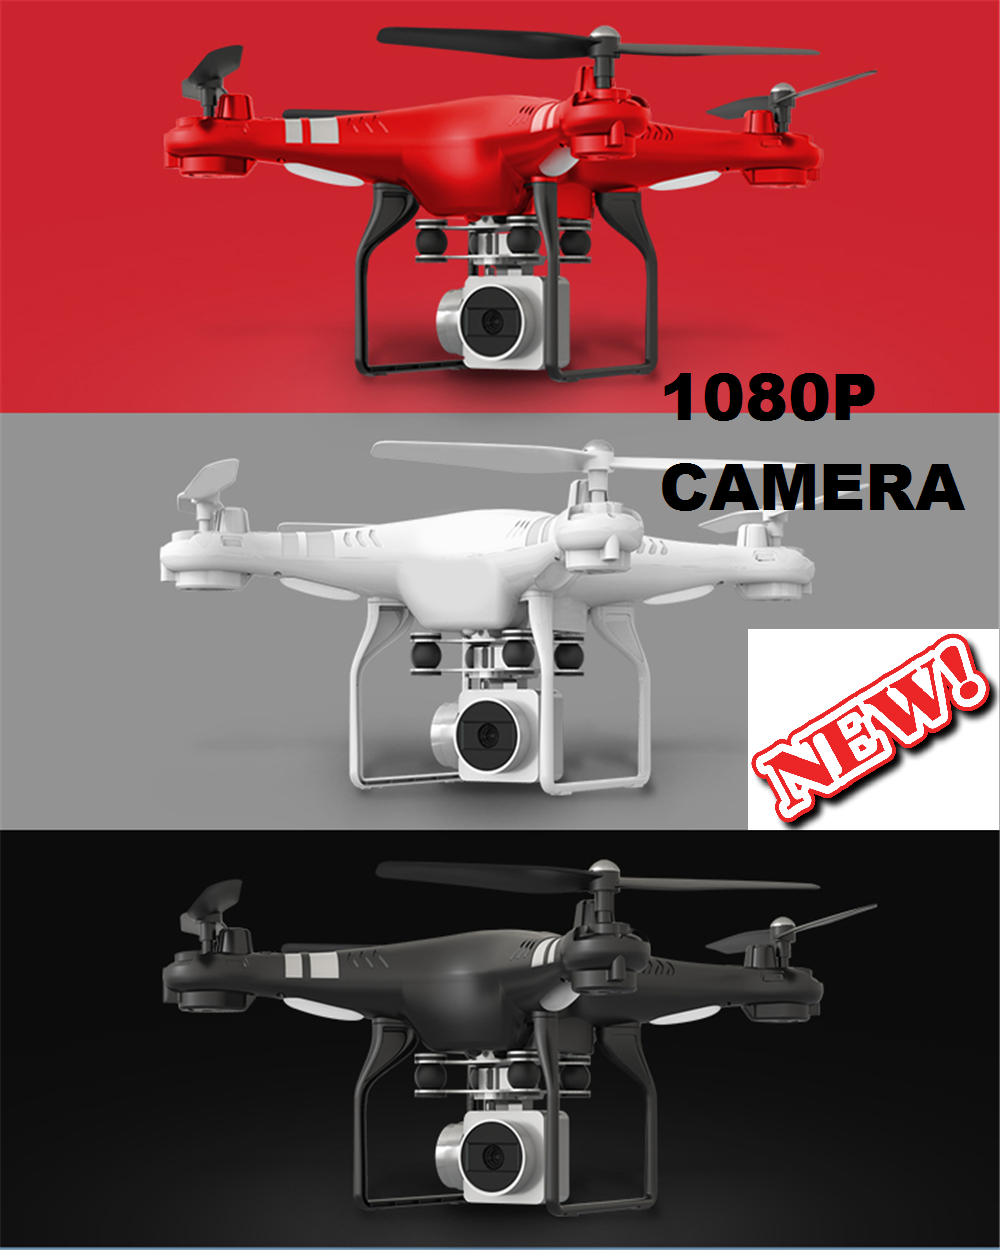 FREE SHIPPING--WIFI DRONE SPLASH AUTO WITH 1080P CAMERA LIVE VIDEO AND GPS